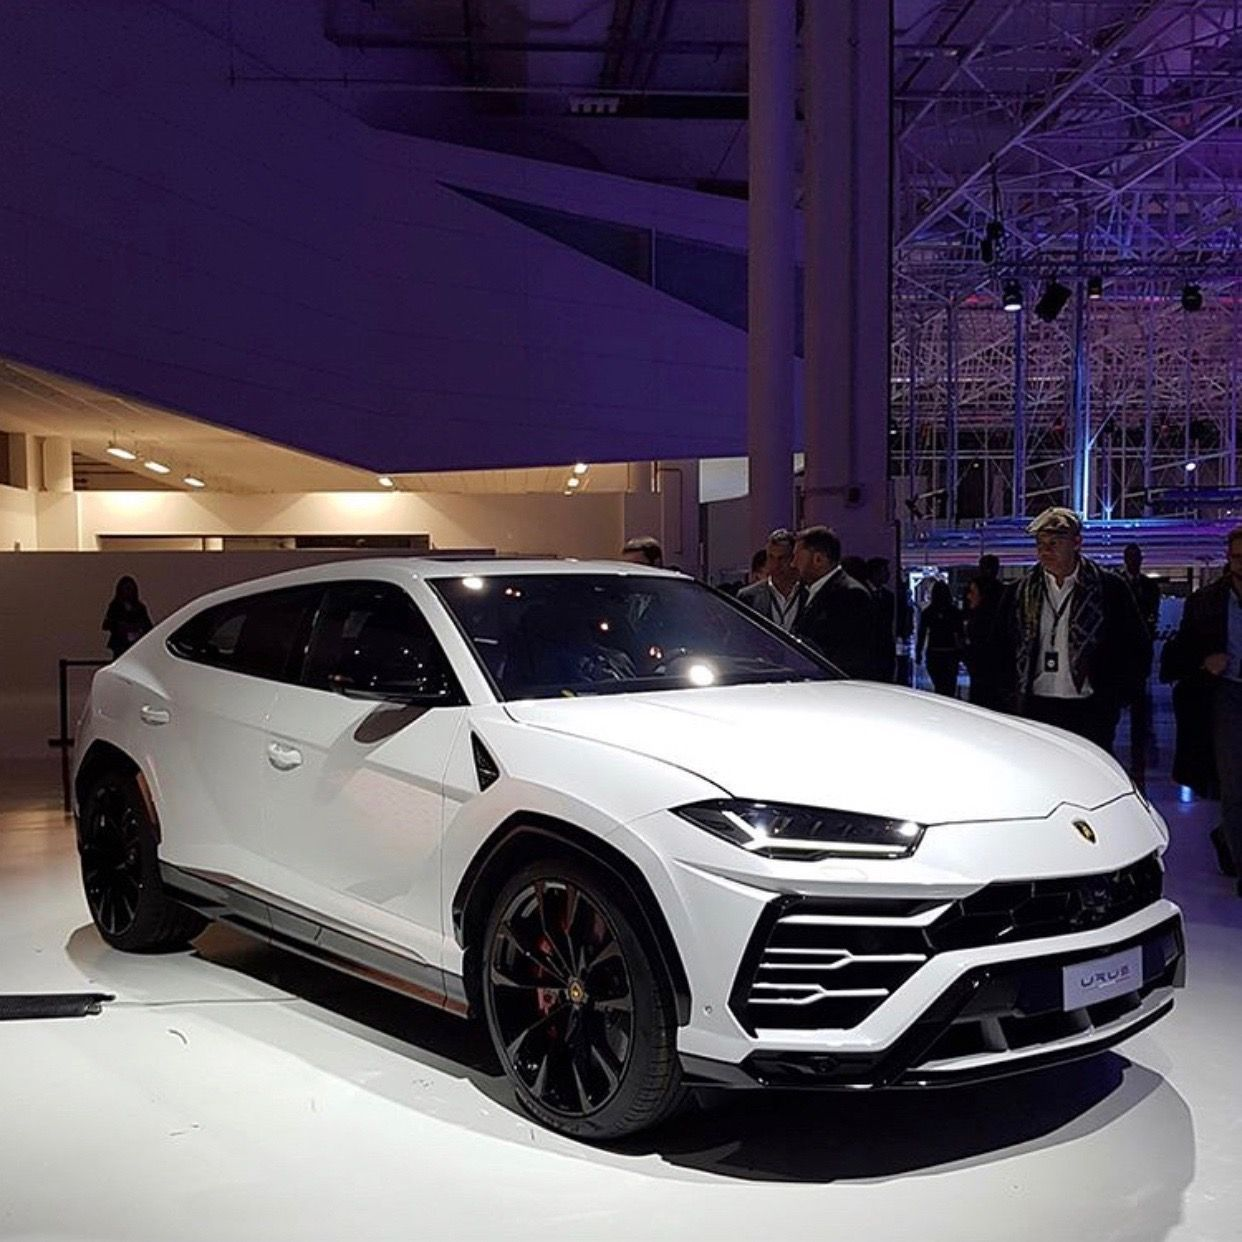 Lamborghini Urus Painted In Bianco Monocerus Photo Taken By Alexandremourreau On Instagram